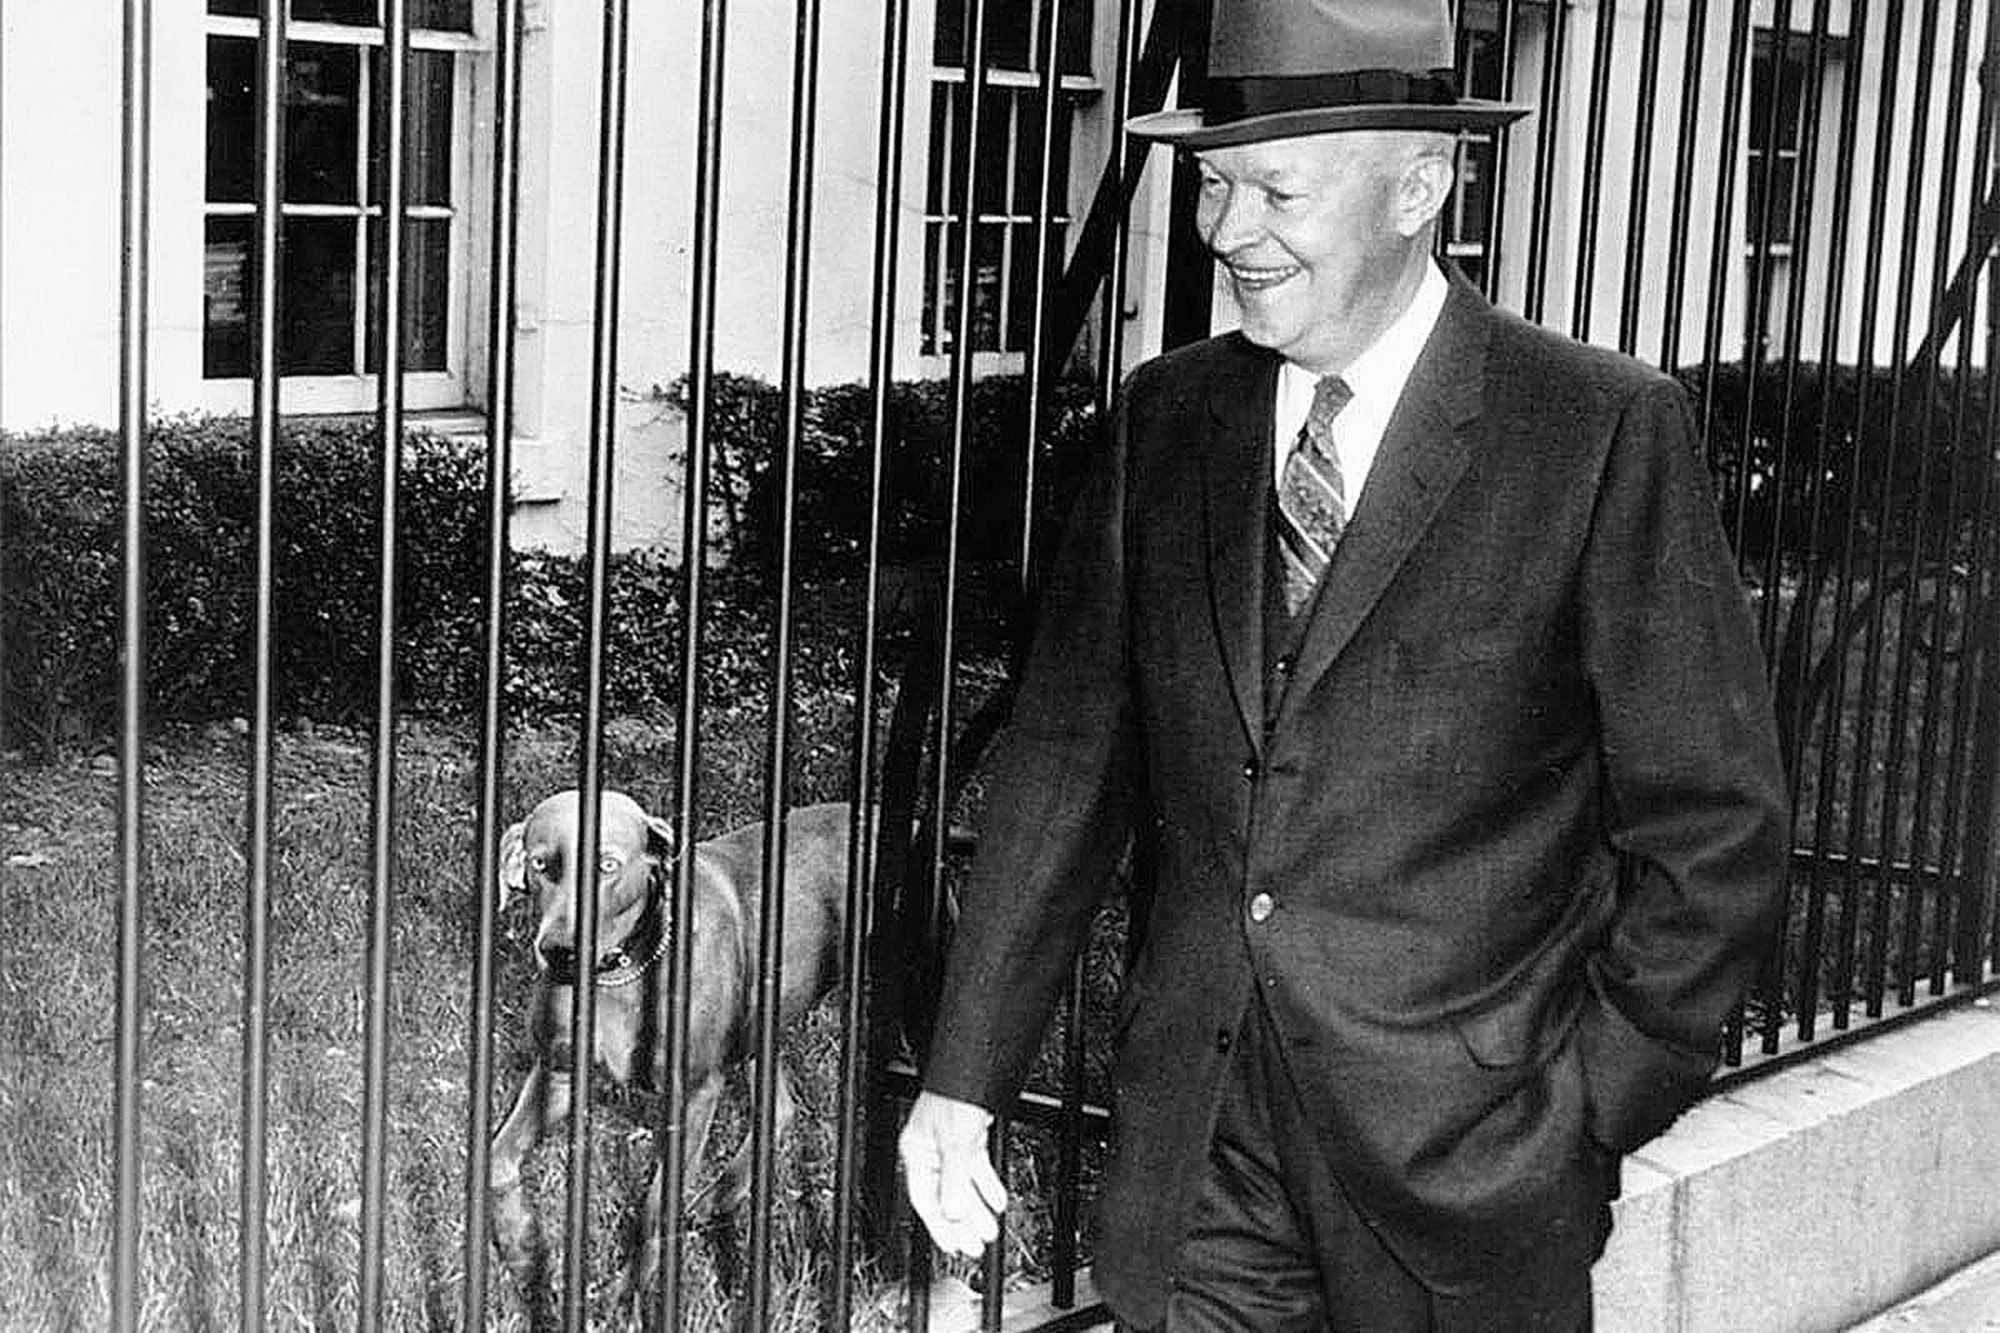 Photograph of Dwight D. Eisenhower and dog